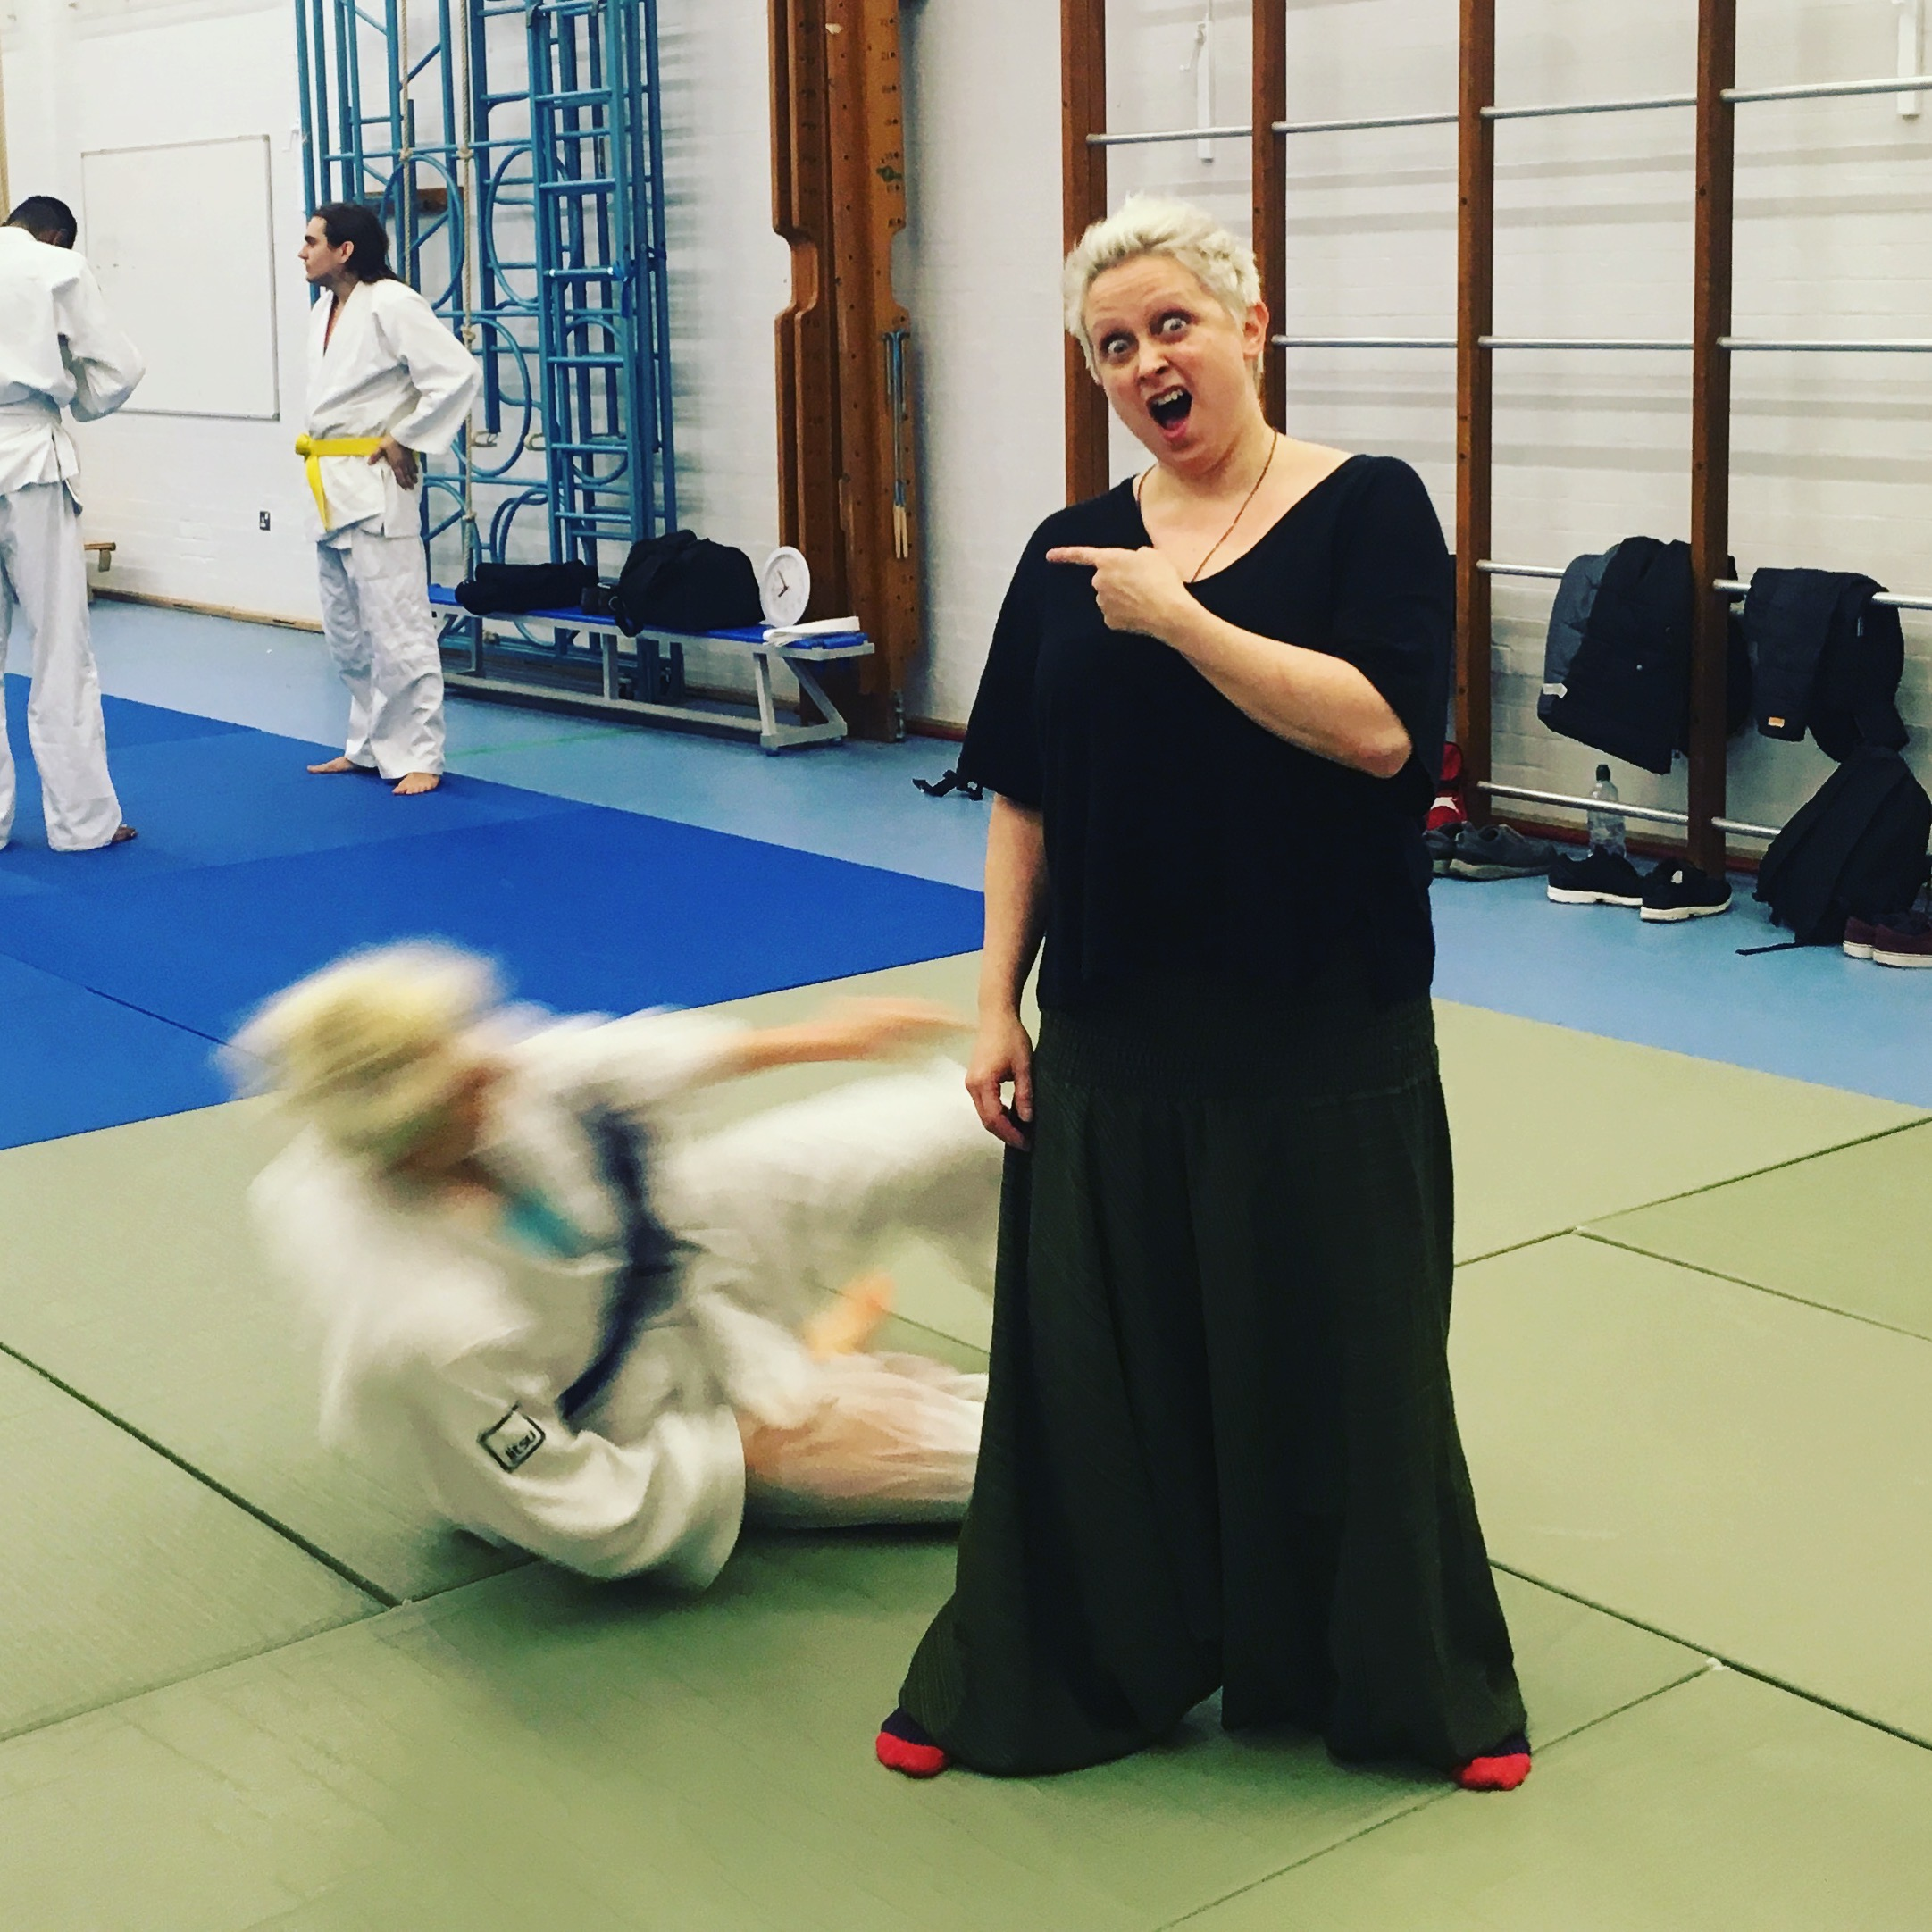 3.30pm Tuesday 9th Jan Radio 4 - Listen to Making History for an interview about kick ass jiu jitsu suffragettes with Naomi Paxton and Iszi Lawrence